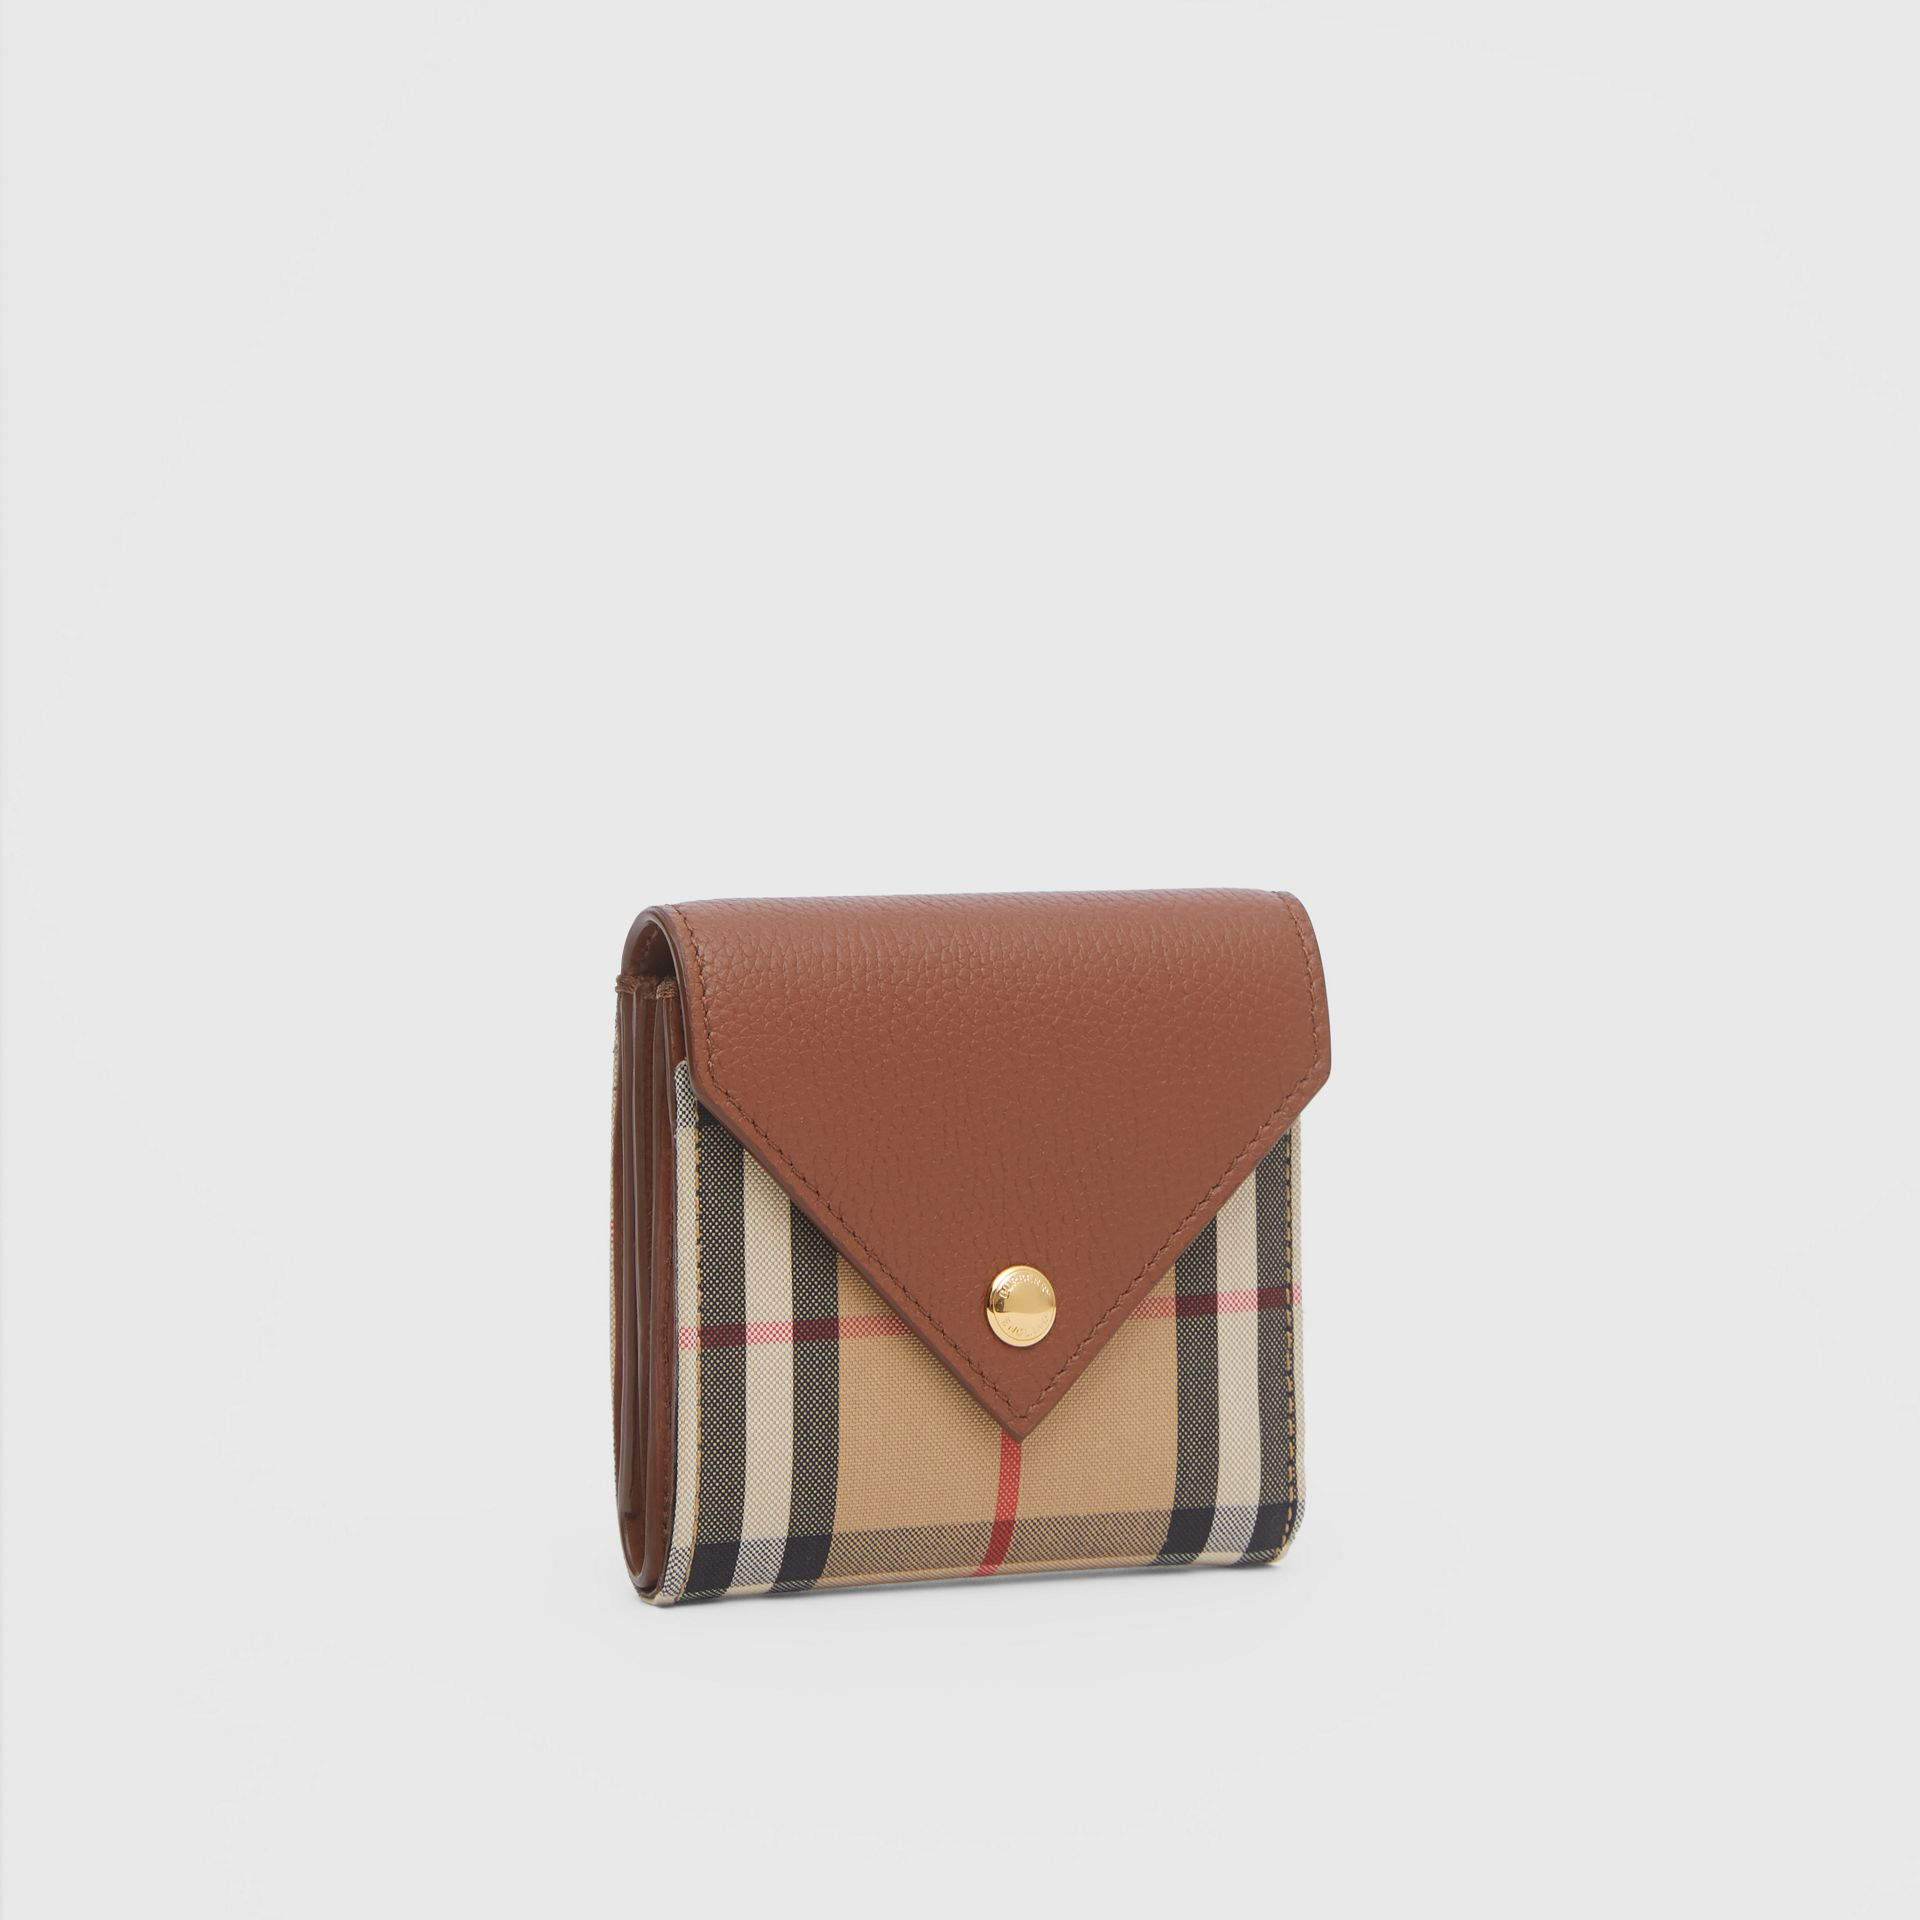 Vintage Check and Grainy Leather Folding Wallet in Tan - Women | Burberry - gallery image 3